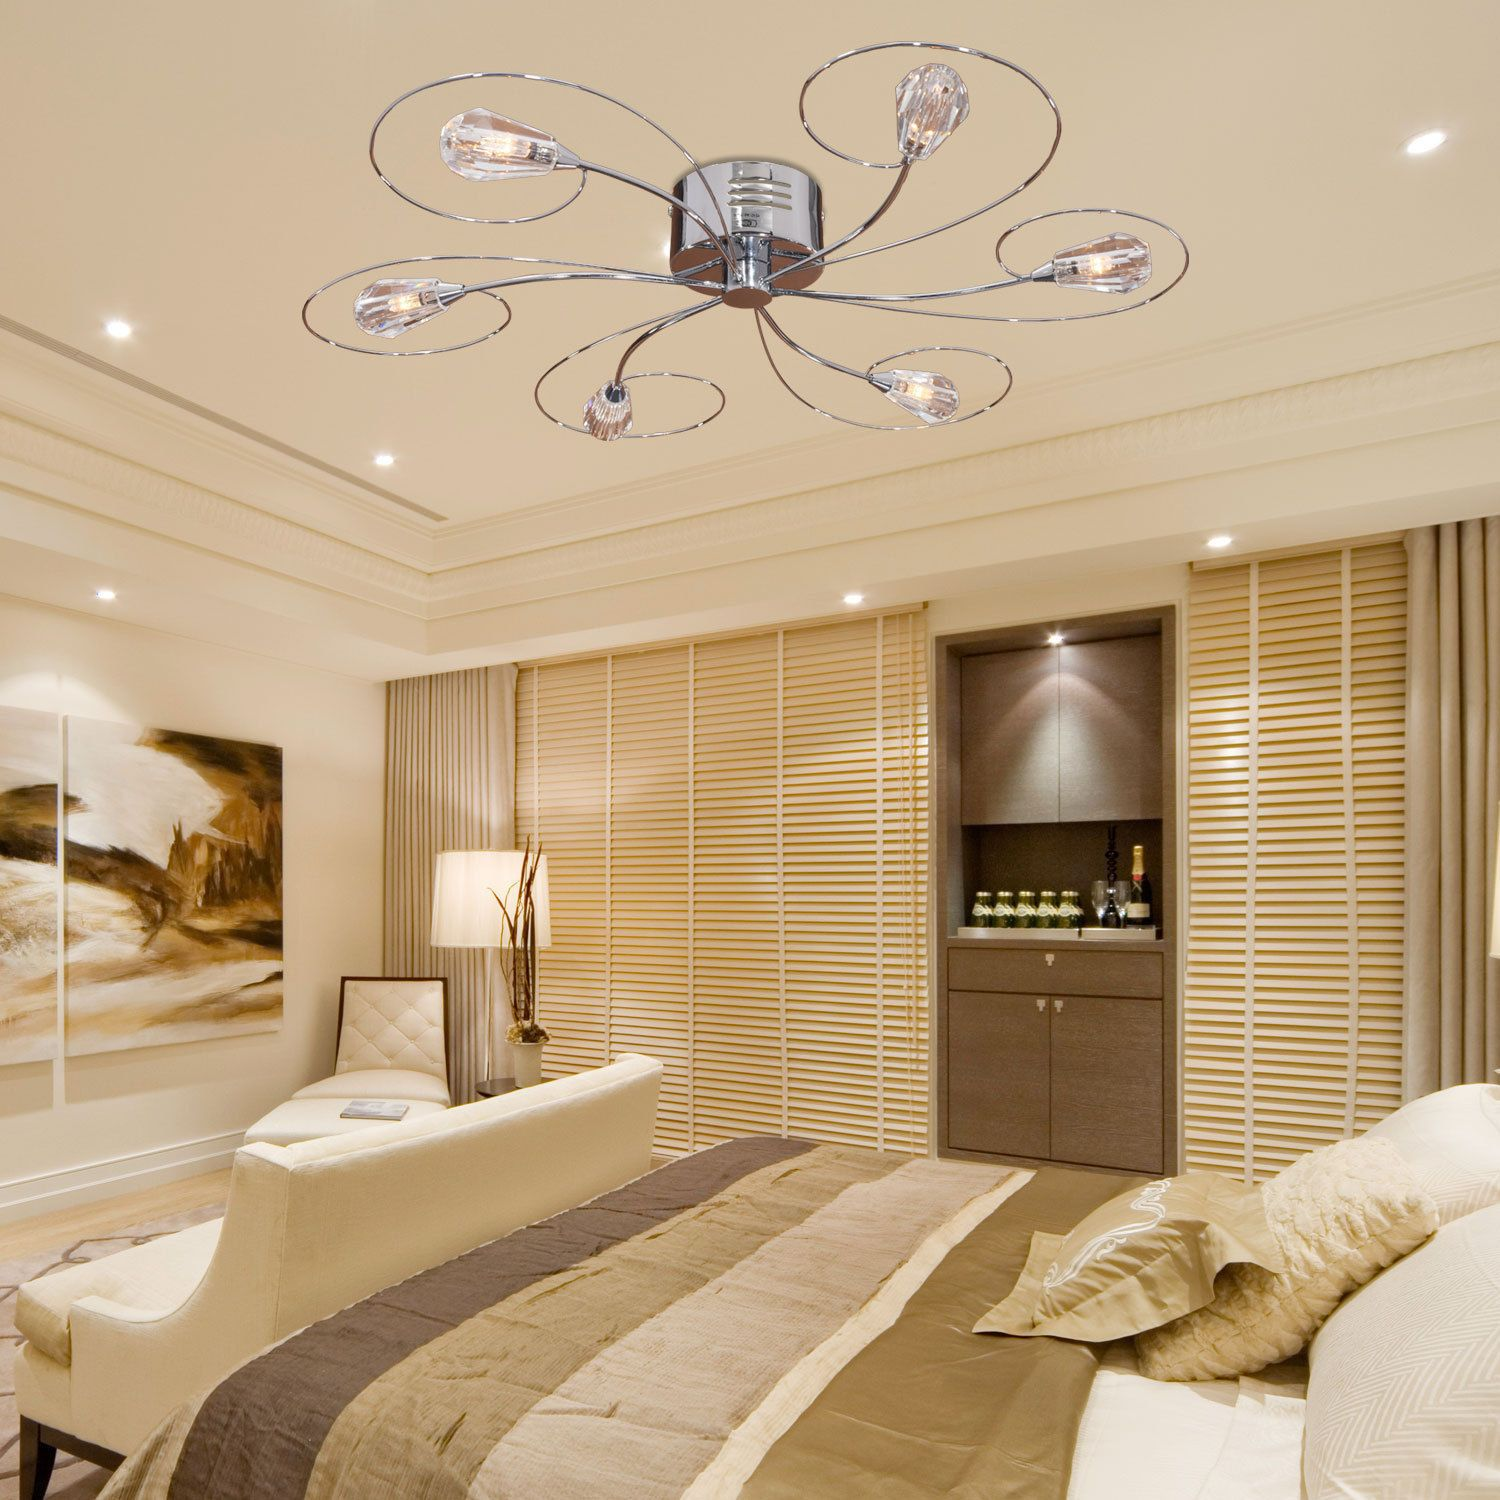 Unique Bright Chandelier Ceiling Fan For Ceiling Deocrating Improvements Ceiling Fan